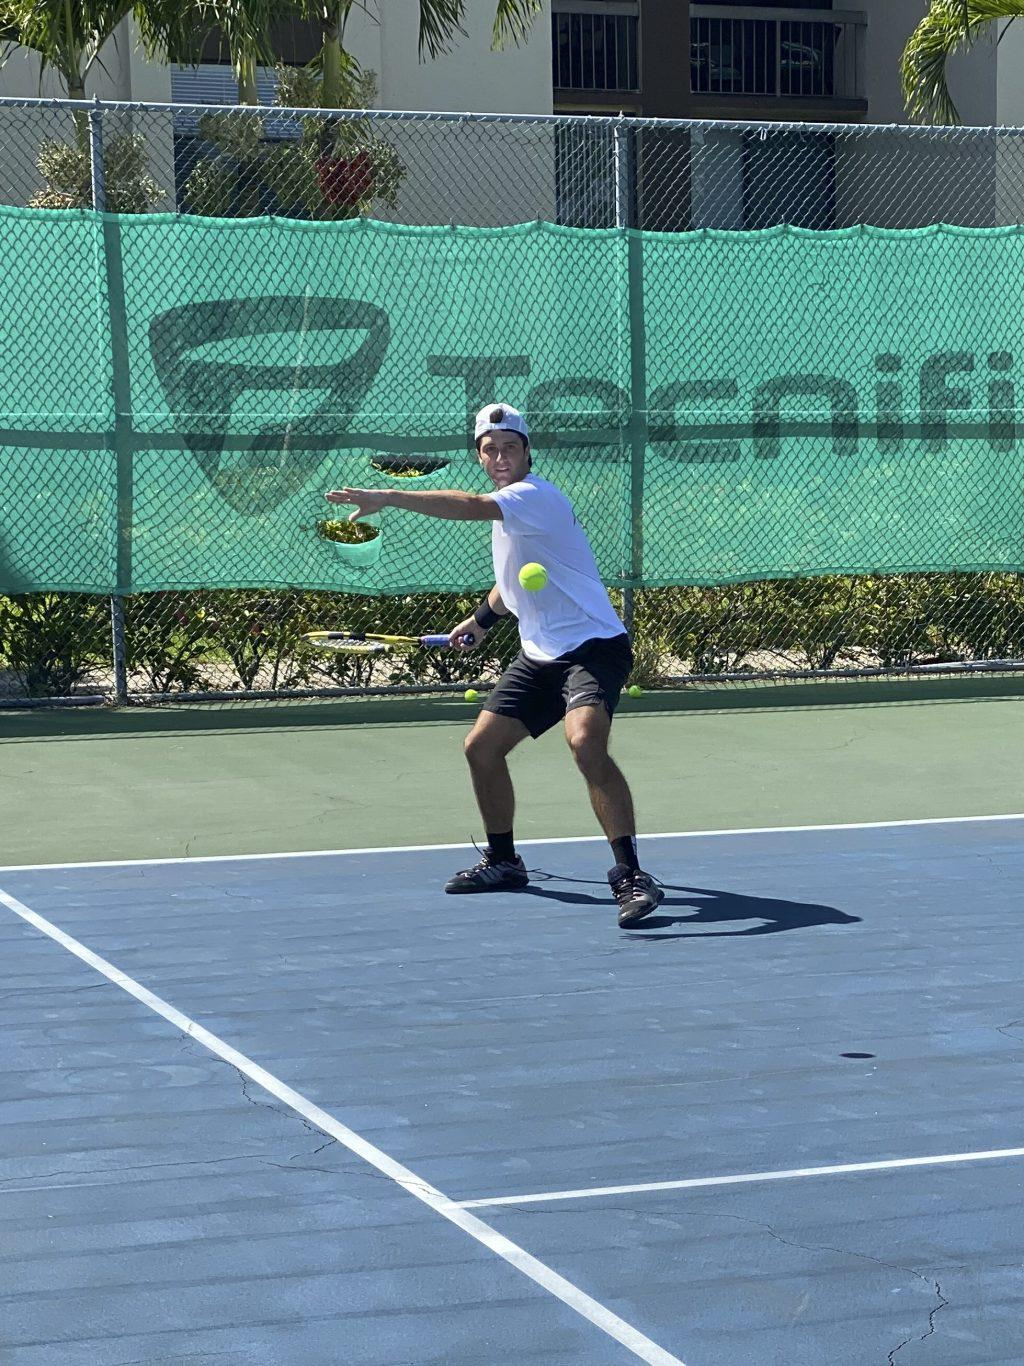 Walk-on freshman Tom Grosjean eyes the ball as he prepares to return the hit to his opponent at Tennium Academy in Delray Beach, Fla. Photo courtesy of Tom Grosjean